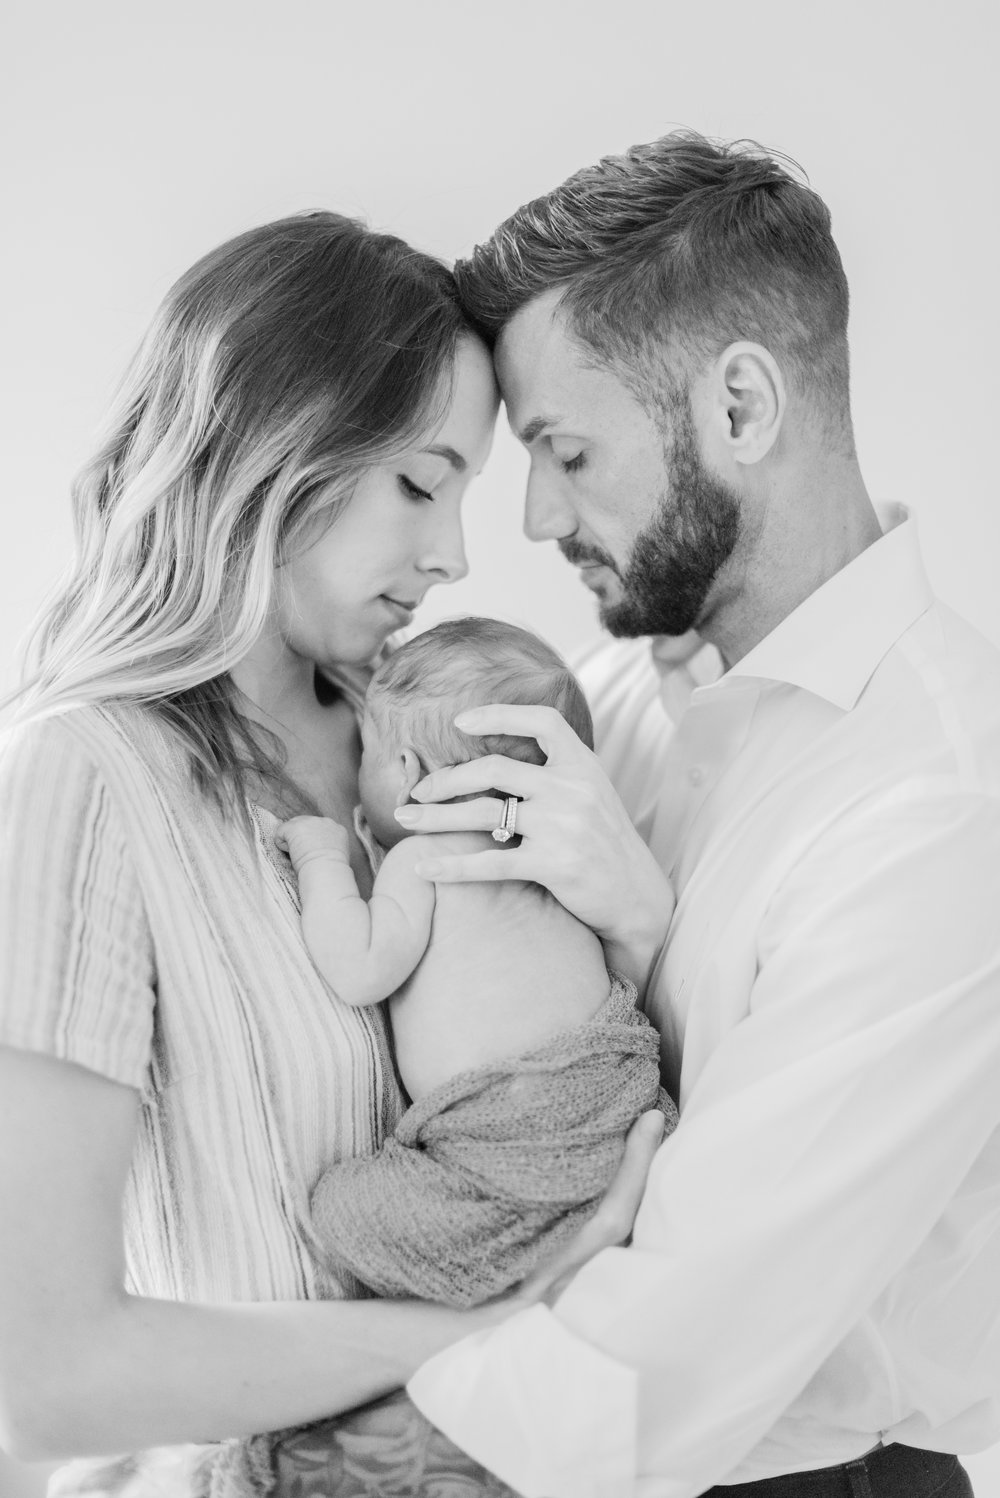 / CONNECT / - Congratulations on your upcoming little bundle of joy! We look forward to connecting with you, and answering any questions that you might have about our Newborn Sessions.